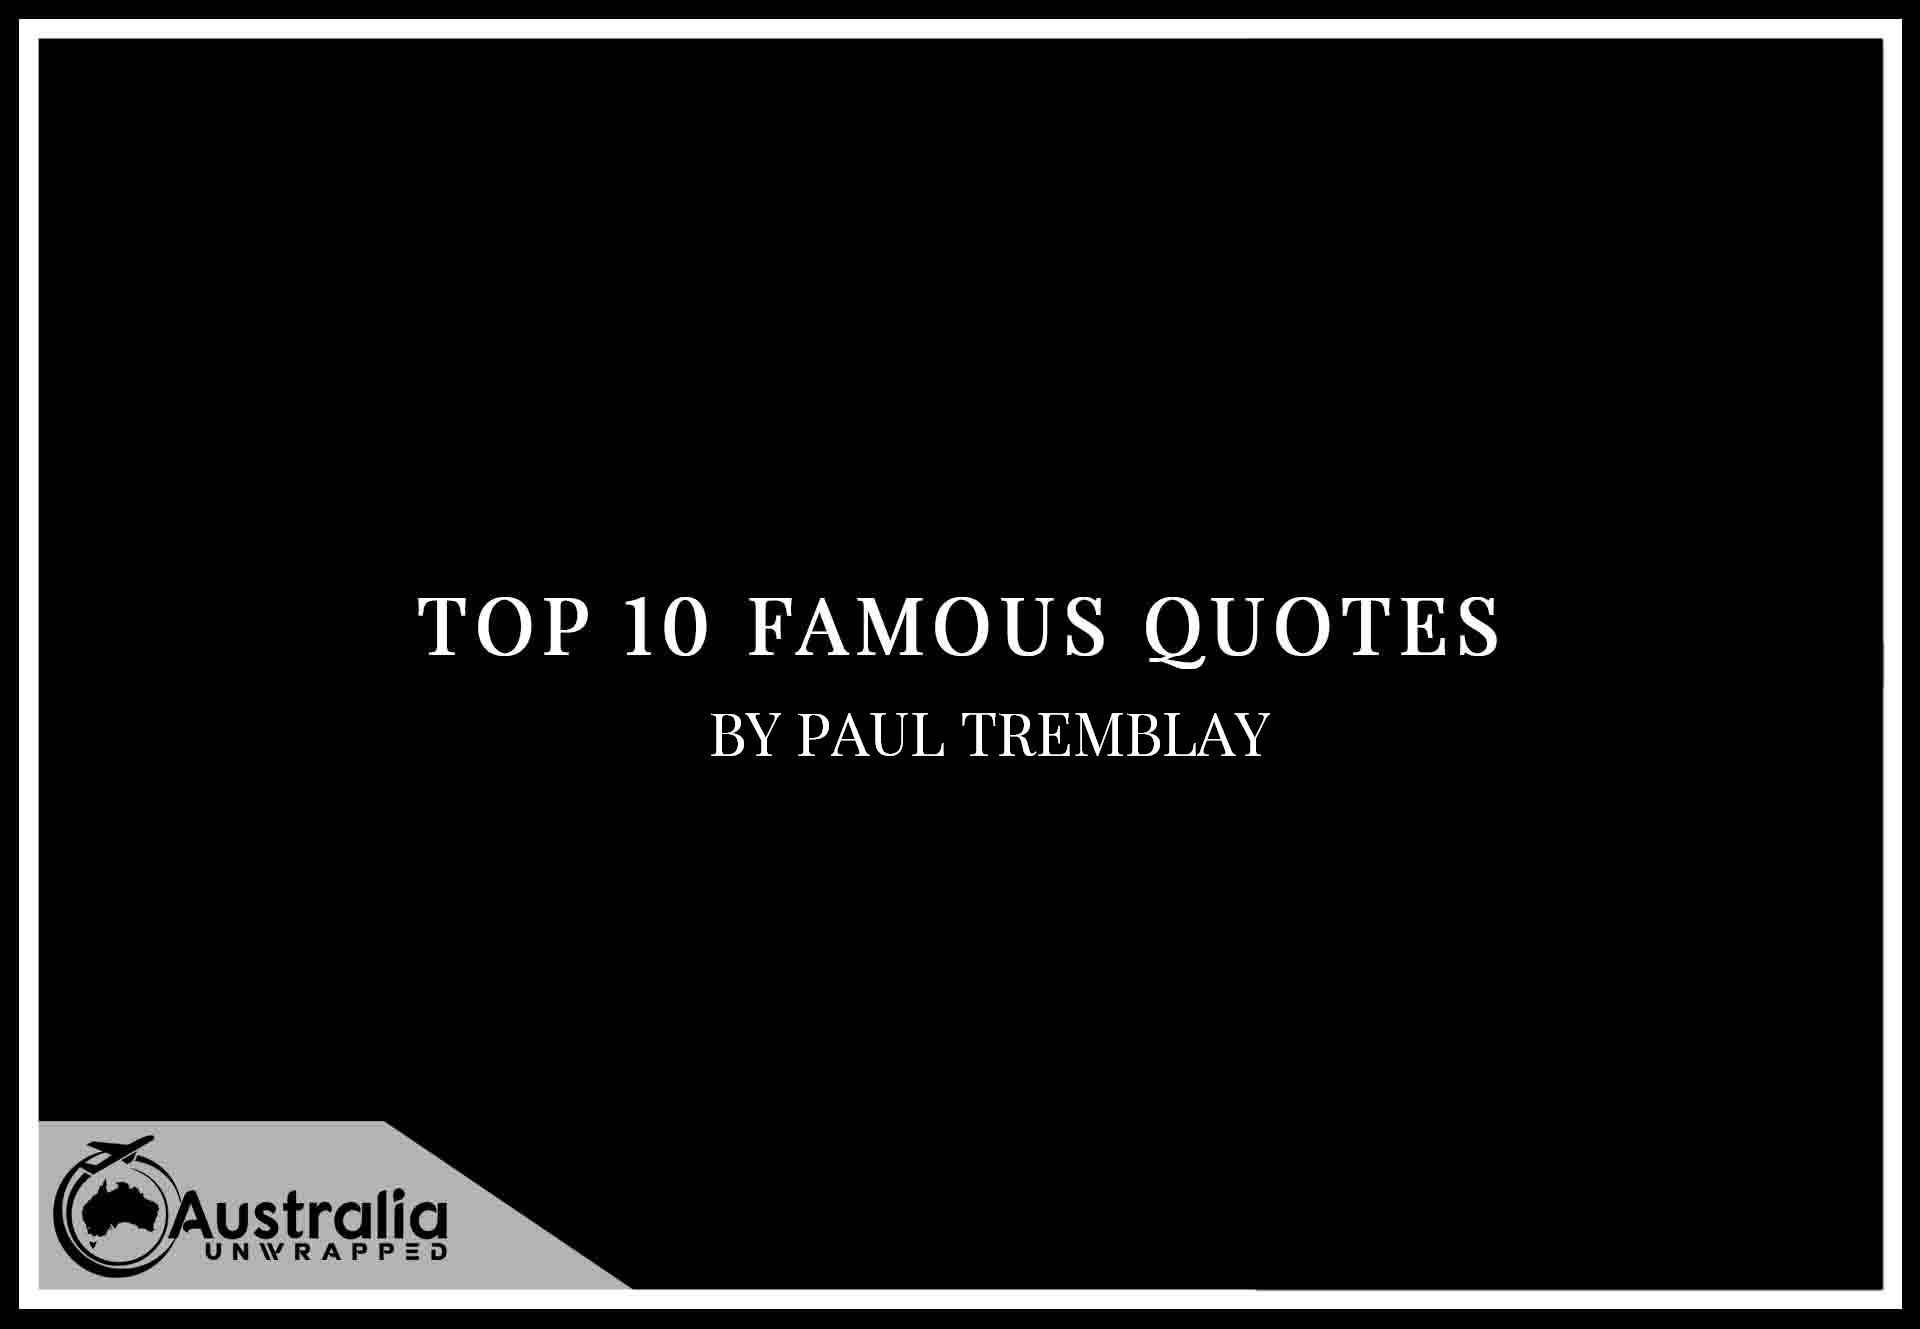 Top 10 Famous Quotes by Author Paul Tremblay